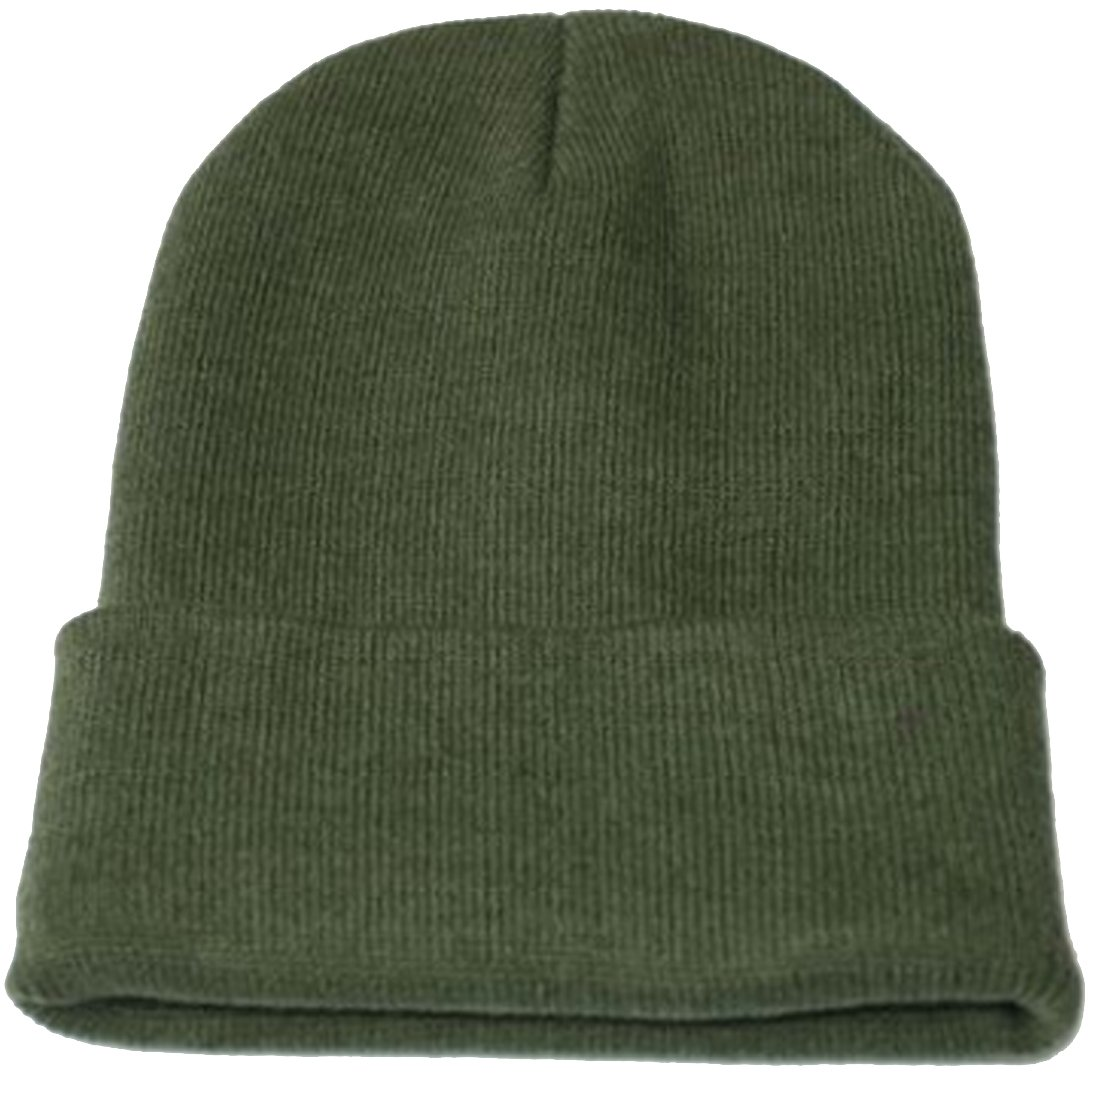 Kuyou neutral winter Fluorescent knitted hat knitting skull cap (ArmyGreen)  at Amazon Men s Clothing store  7d2bea5921d